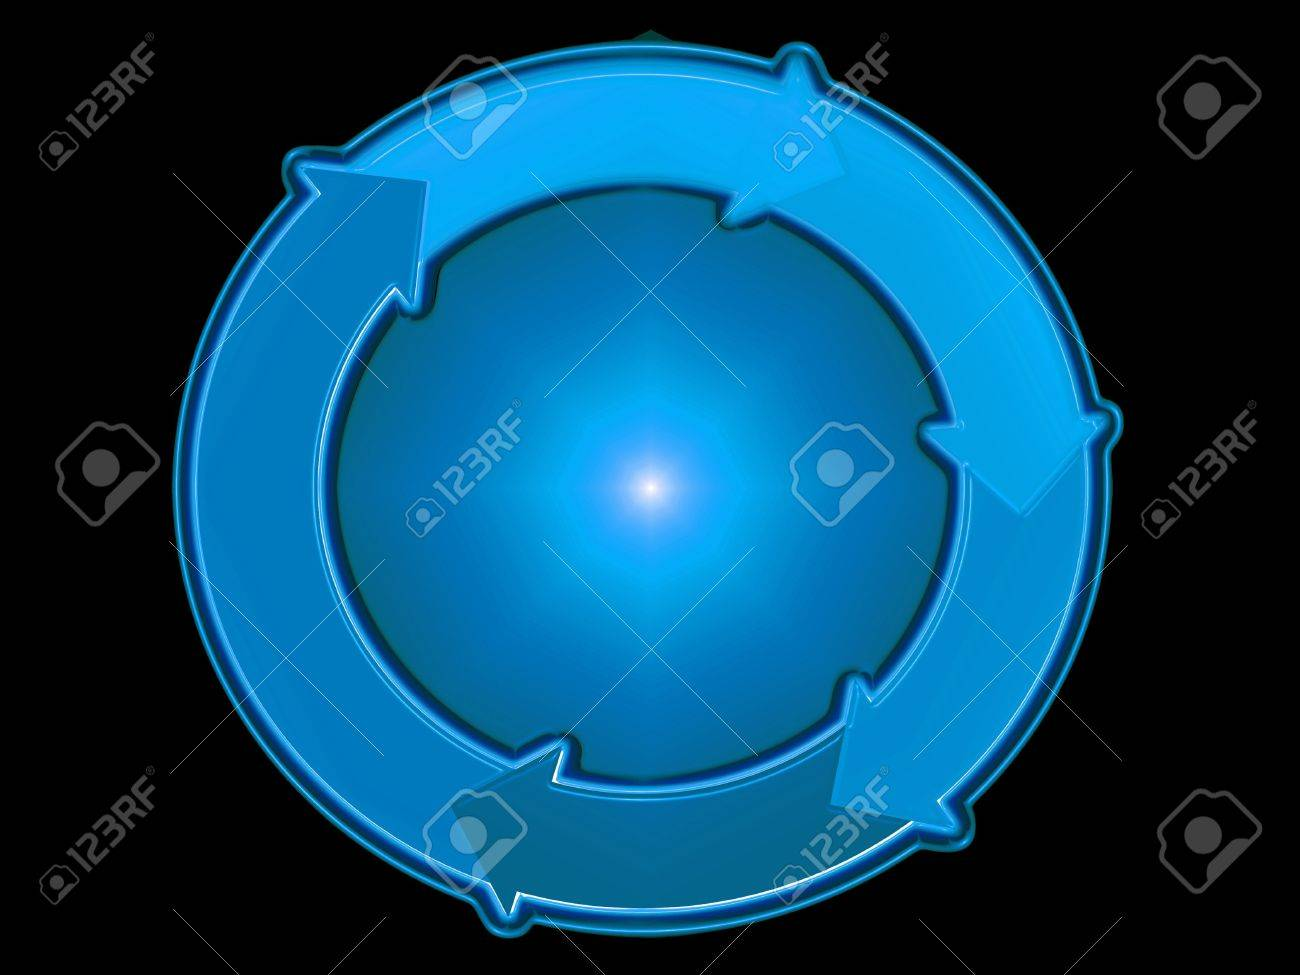 hight resolution of blue spher circle arrow arrows flow rotation graphic